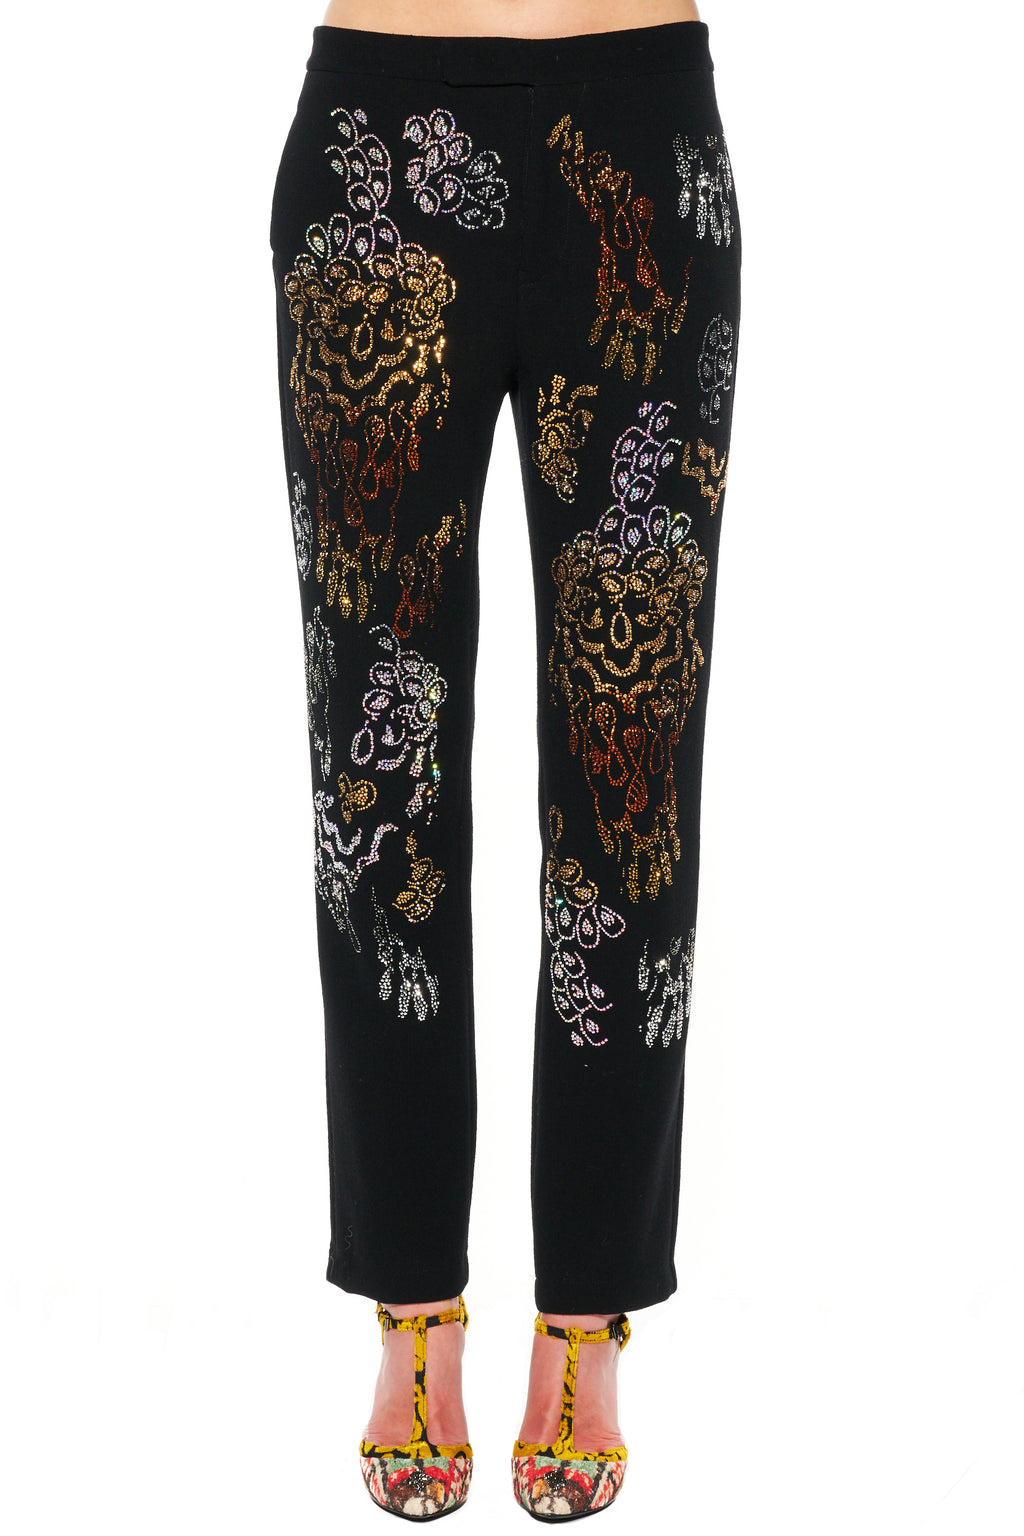 """PICASSO'S FLOWER"" PANTS - Women's Bottoms - Libertine"